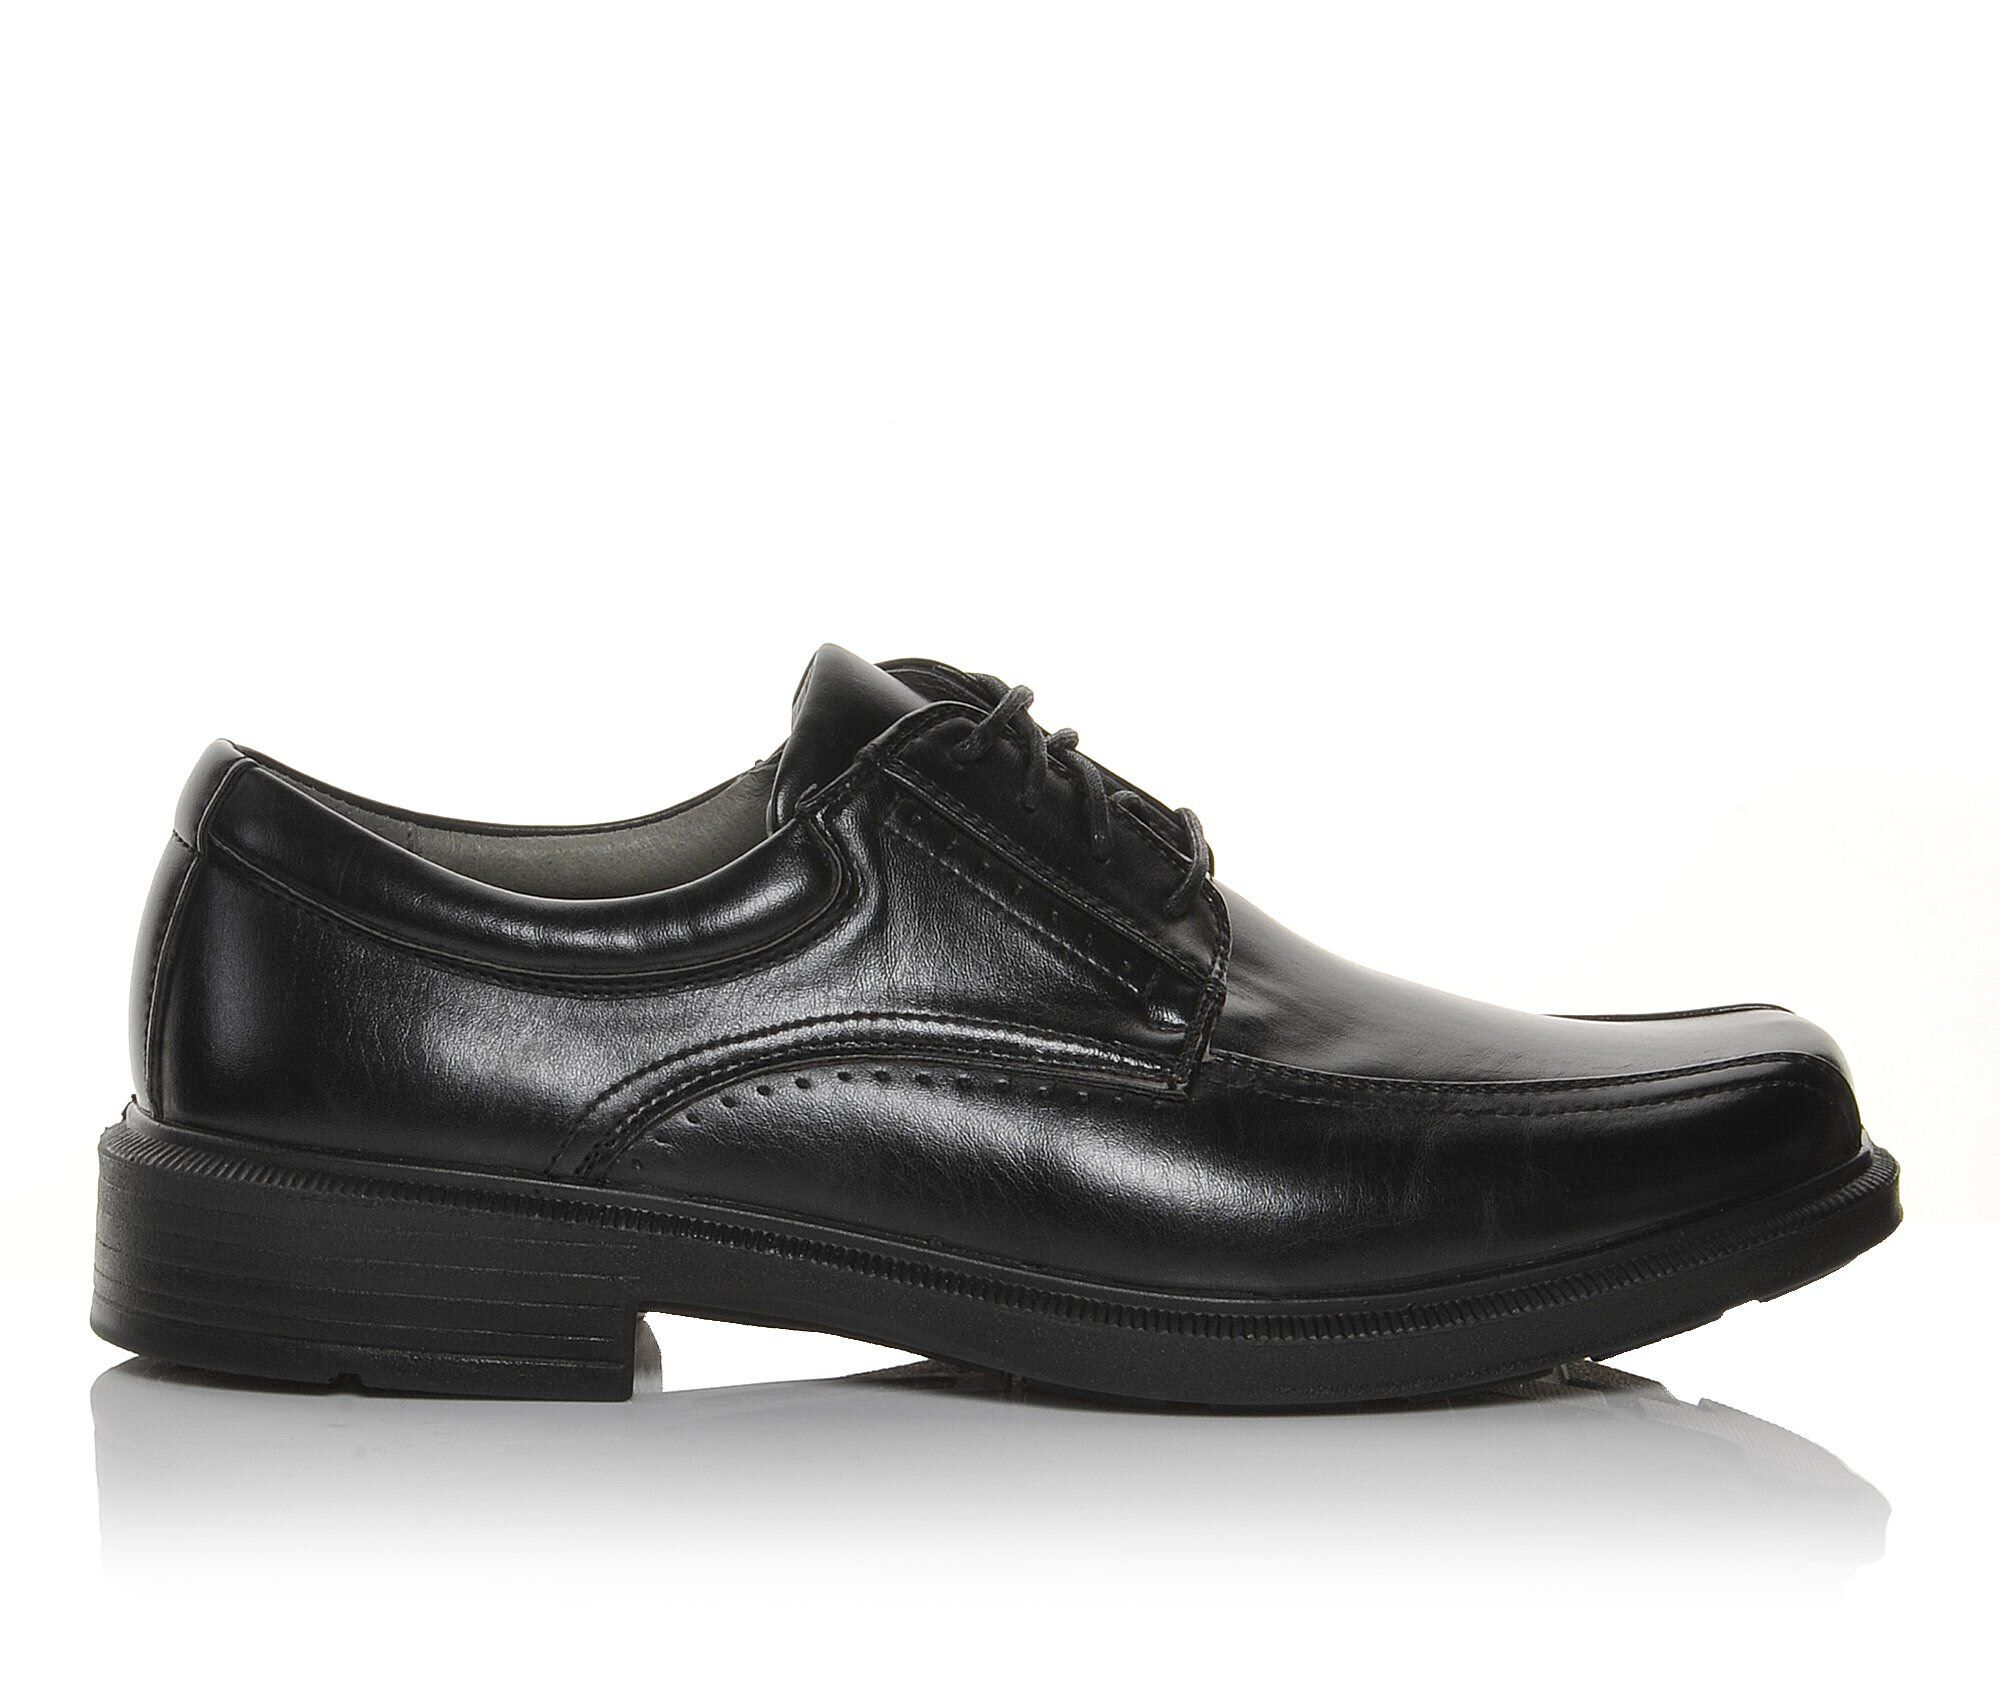 purchase latest style Men's Deer Stags Williamsburg Dress Shoes Black